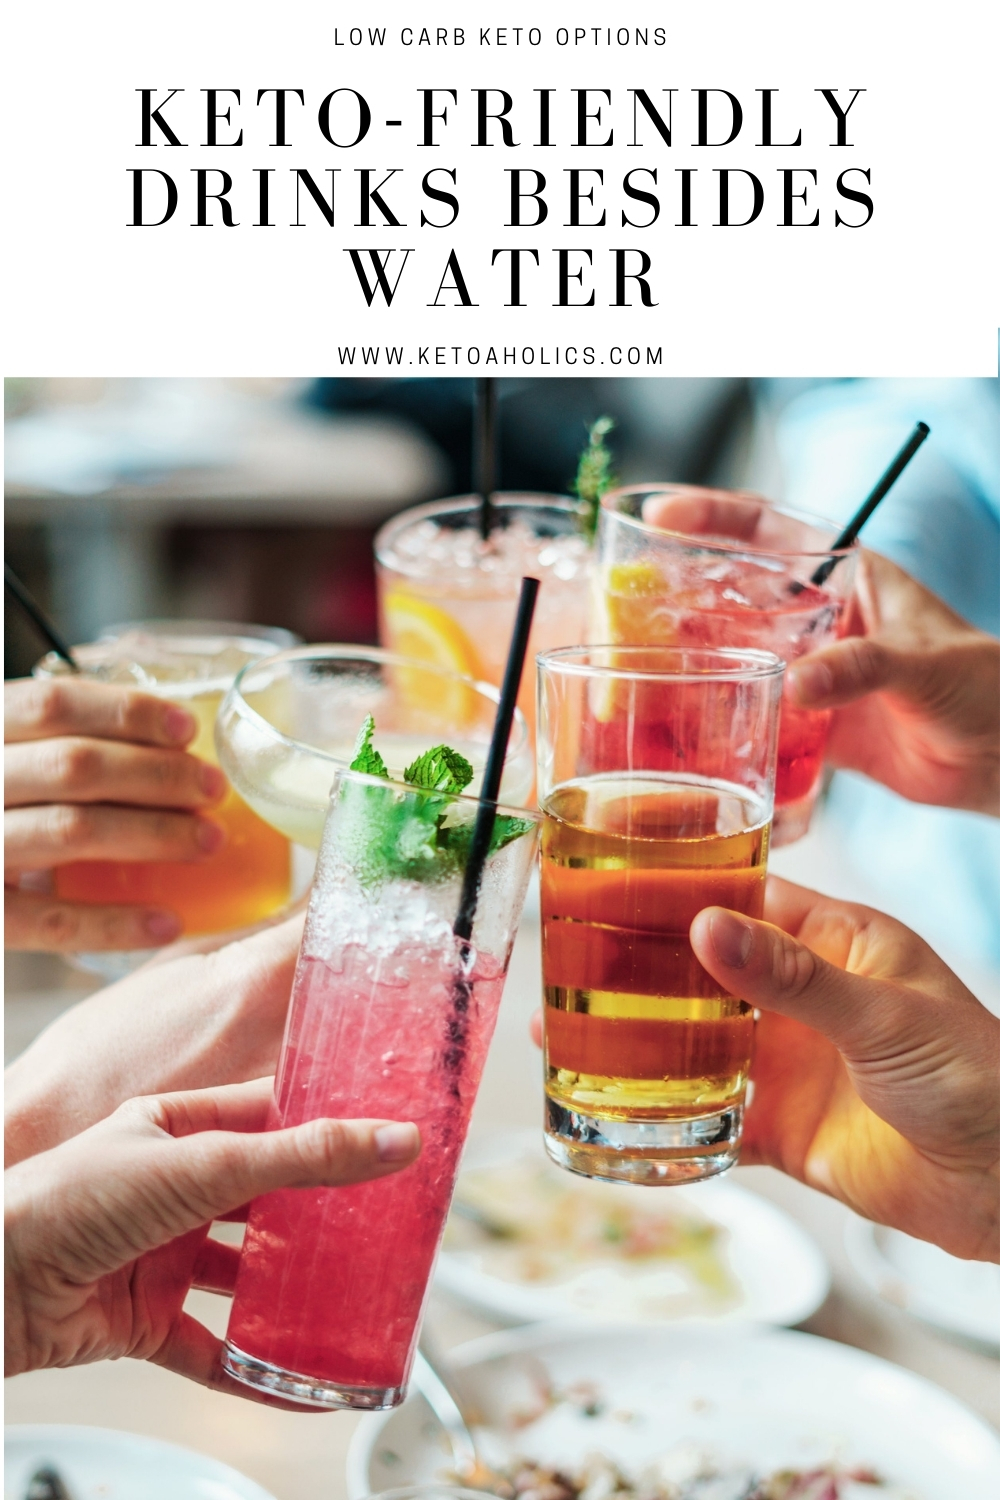 image of Top Keto-Friendly Drinks Besides Water